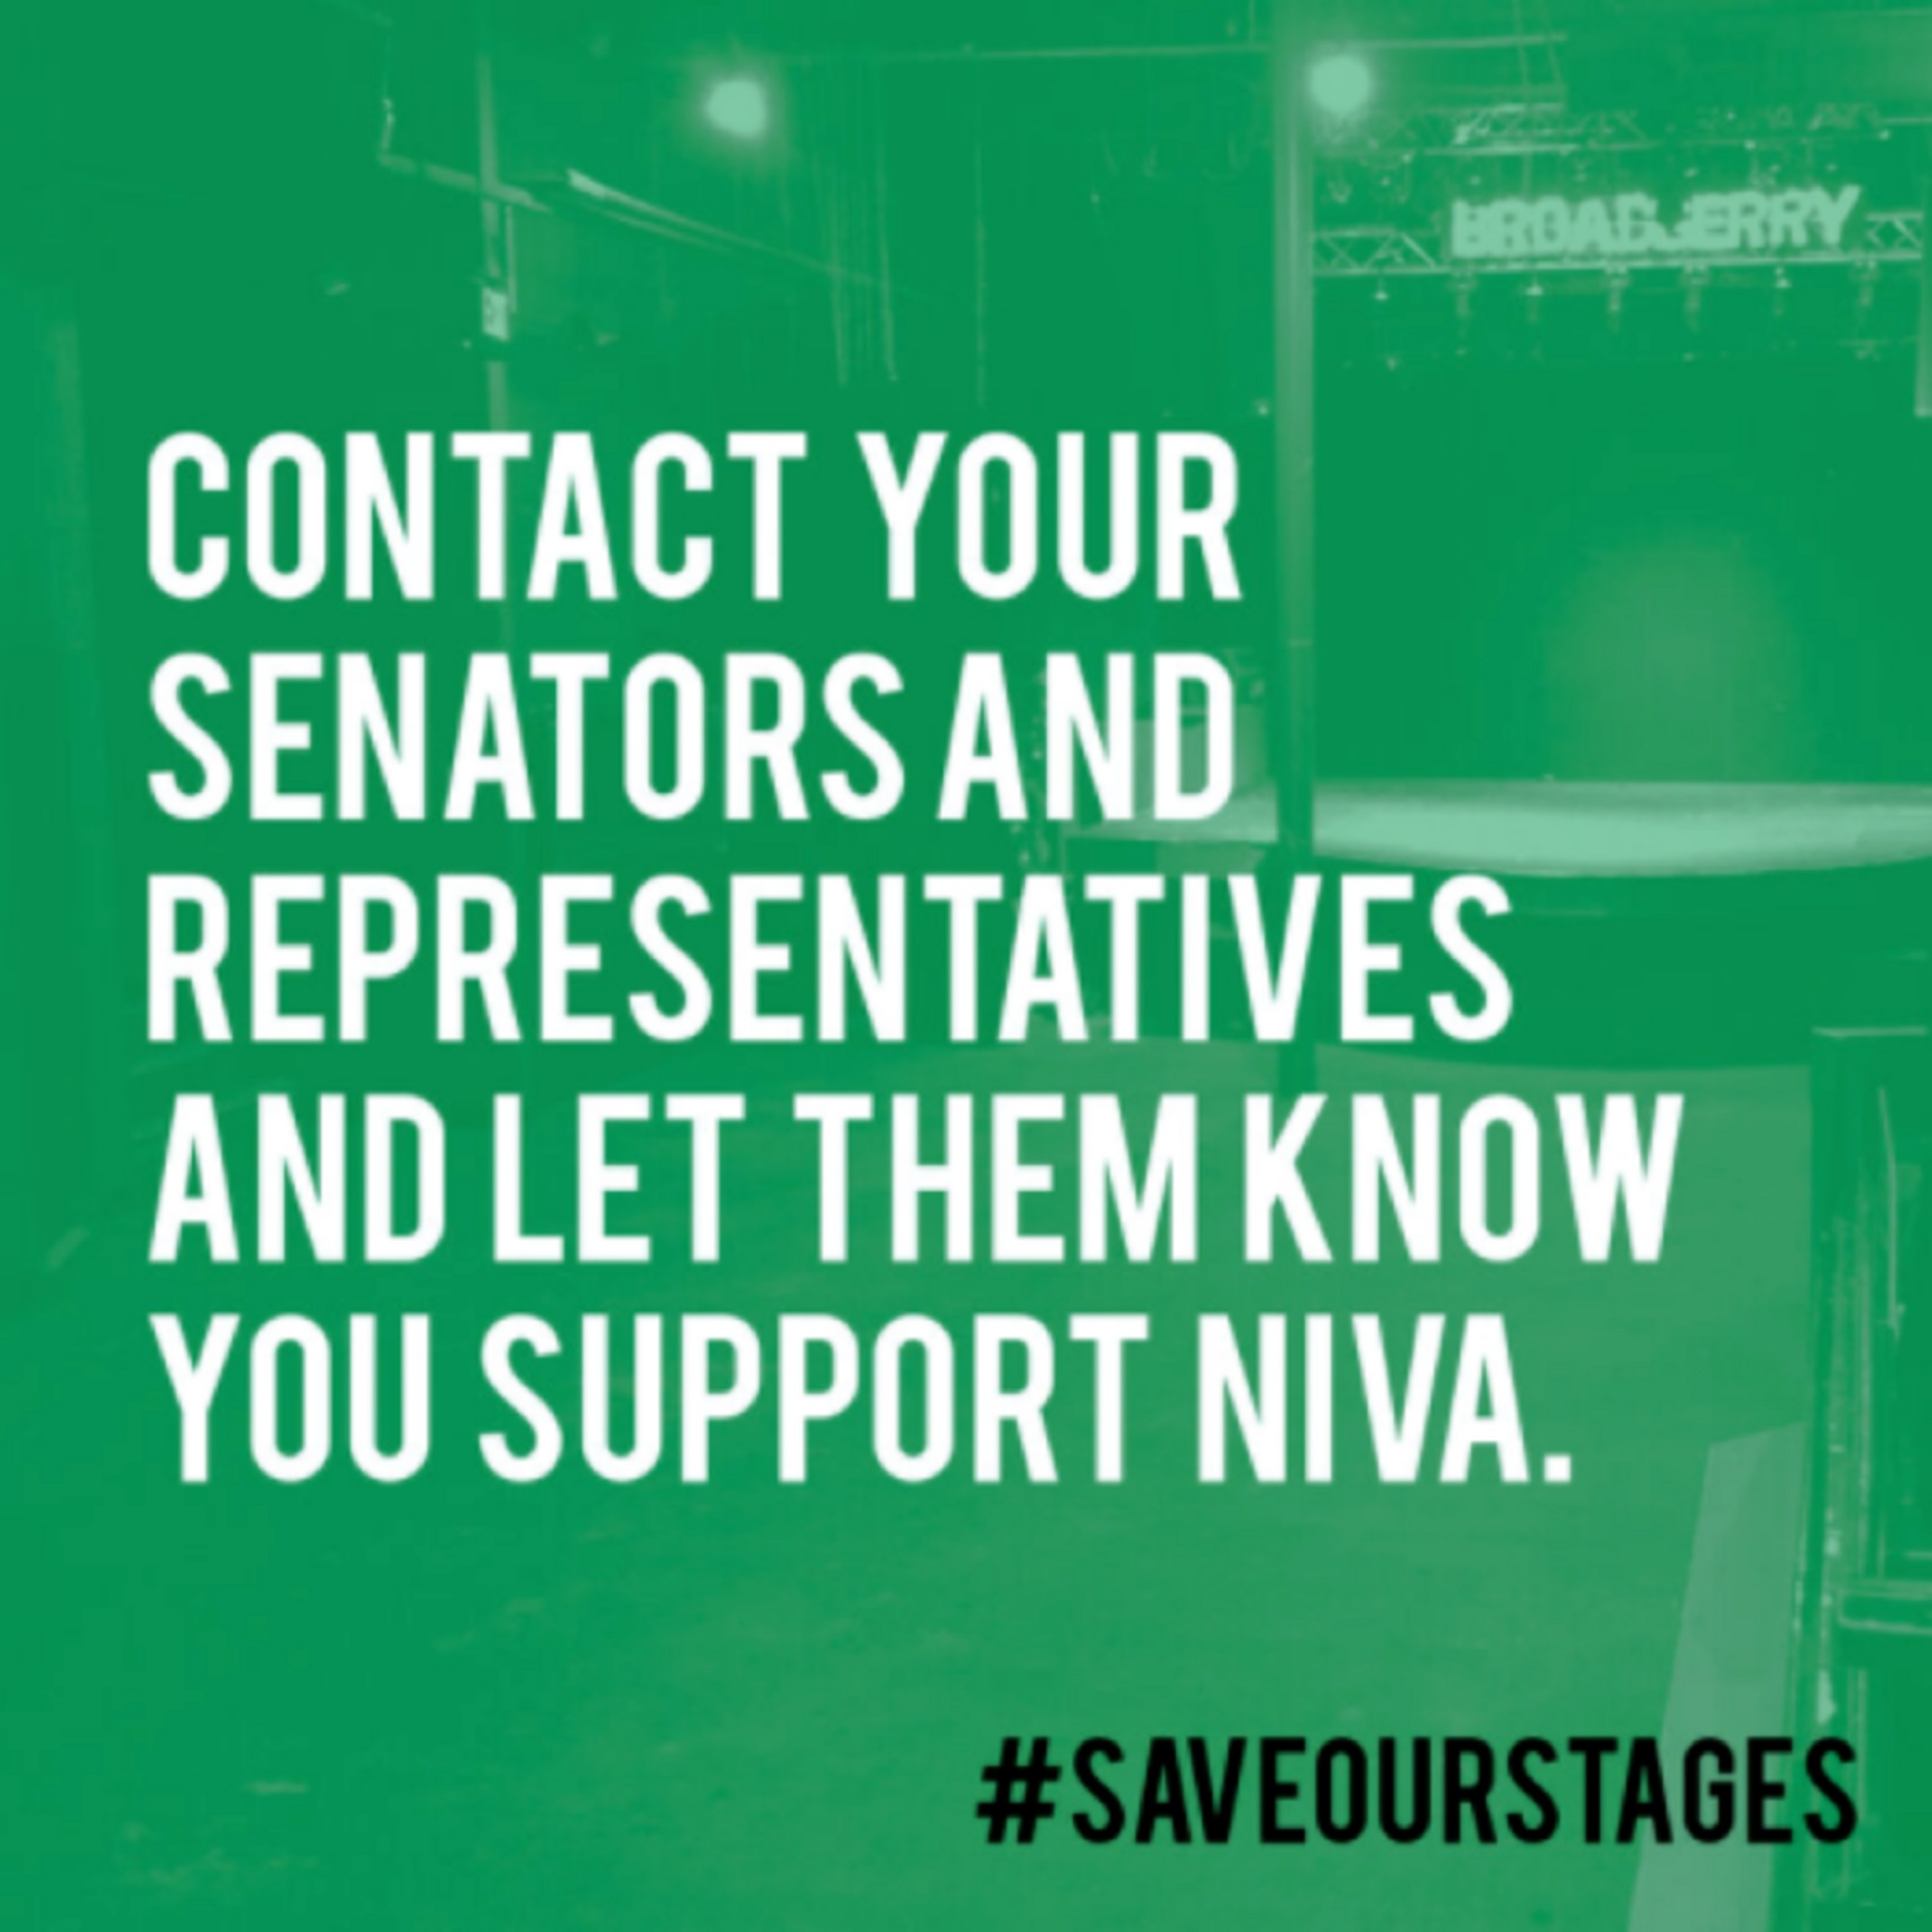 Support the Save Our Stages Act